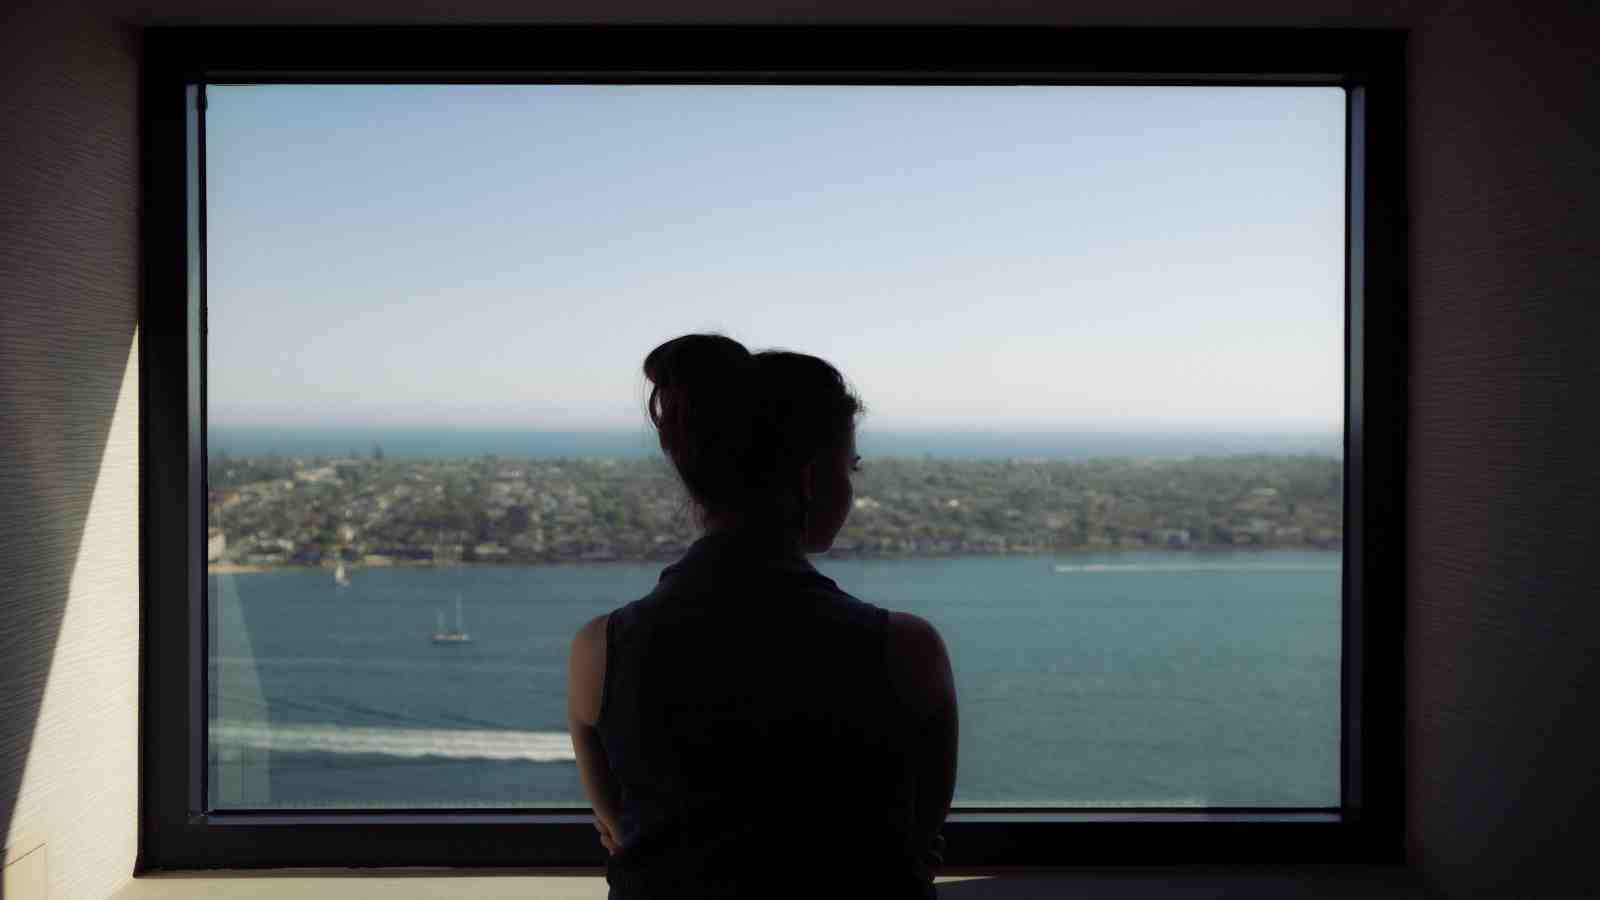 silhouette of woman looking out of window frame at lovely view